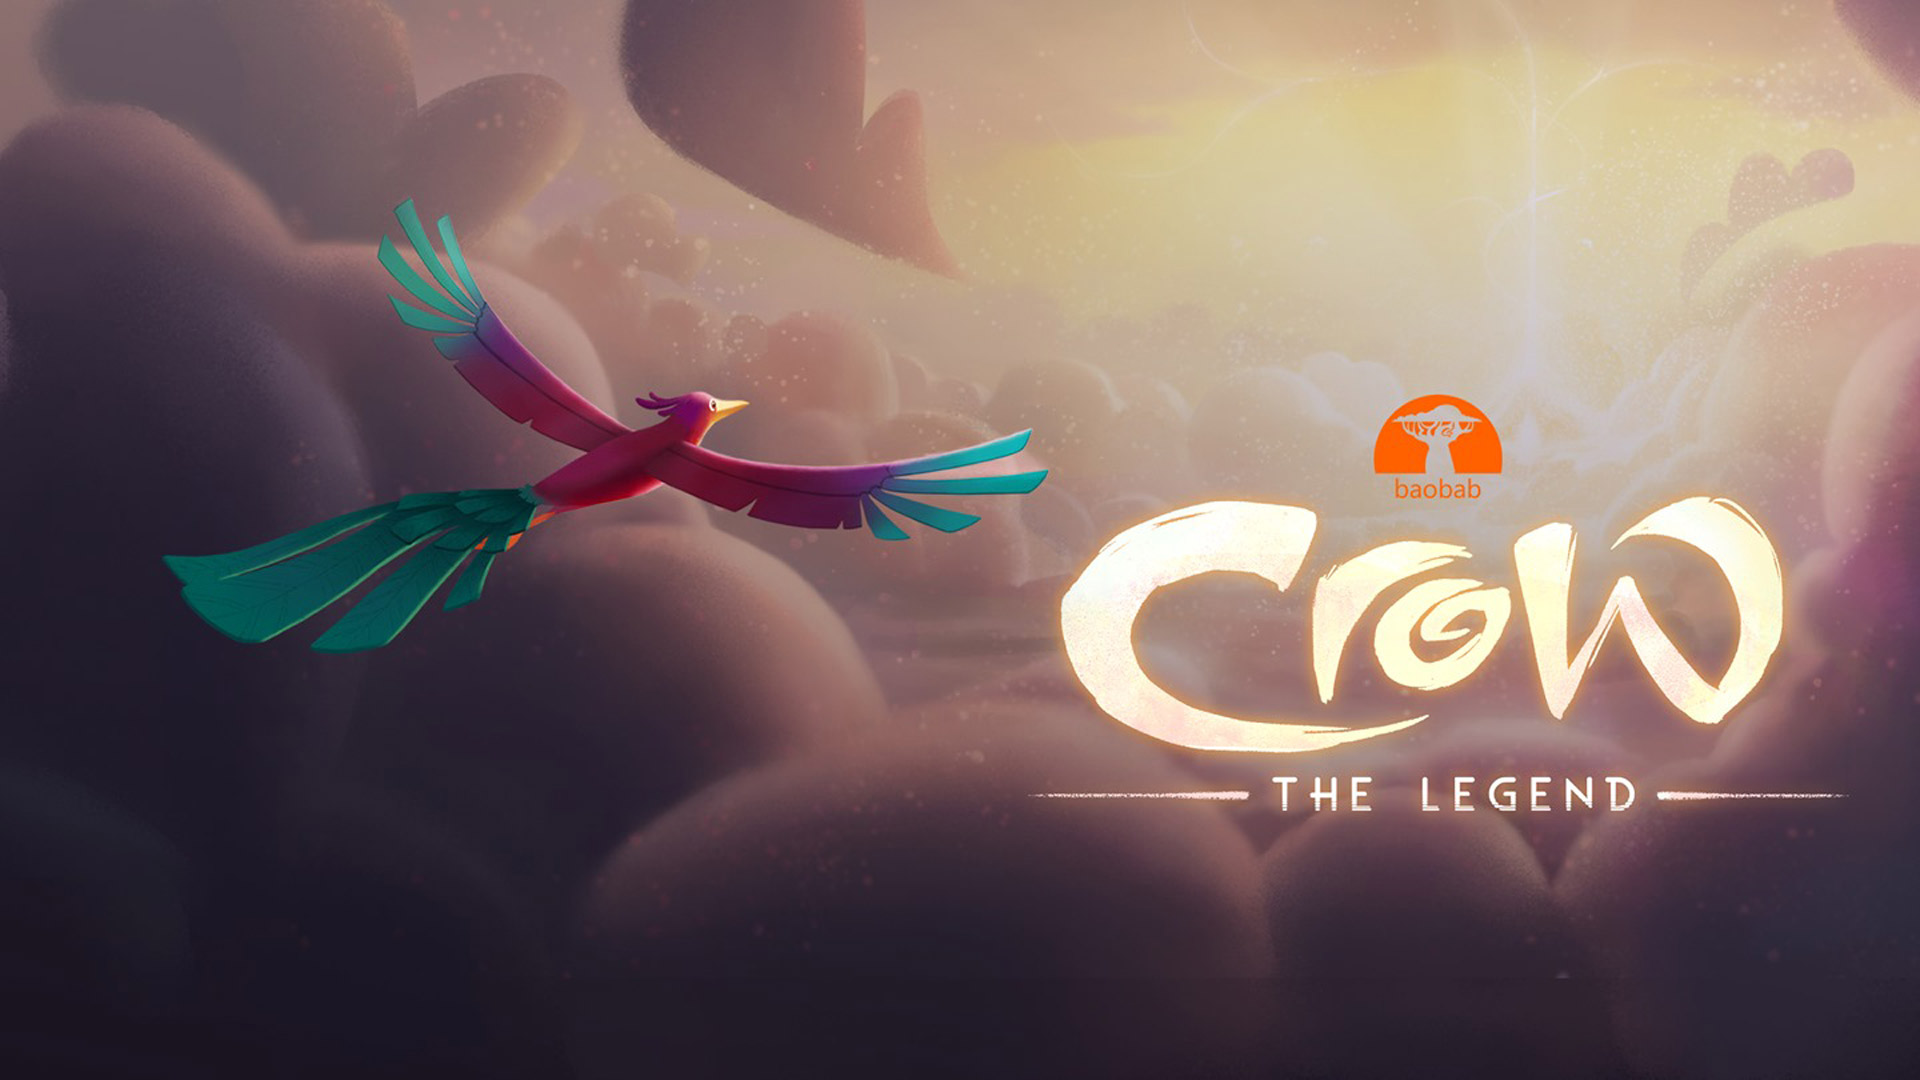 Baobab's New VR Experience 'Crow: The Legend' Launches on Rift, Go & Gear VR